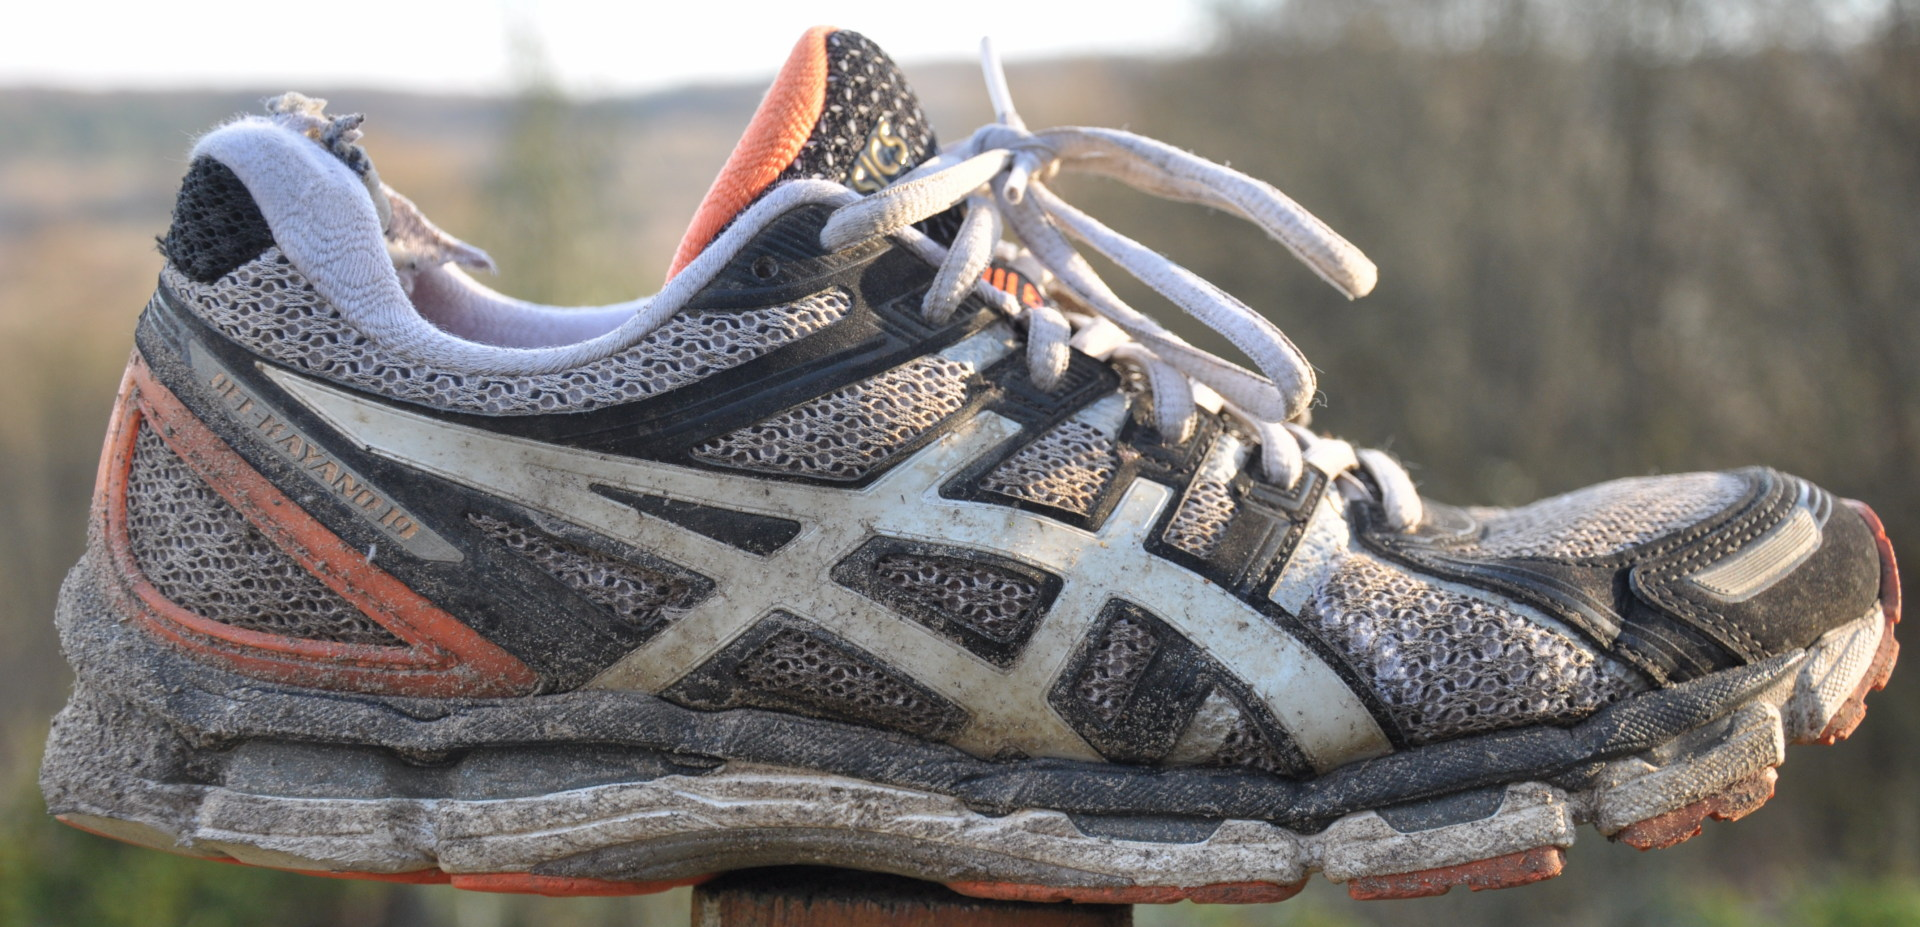 old asics running shoes